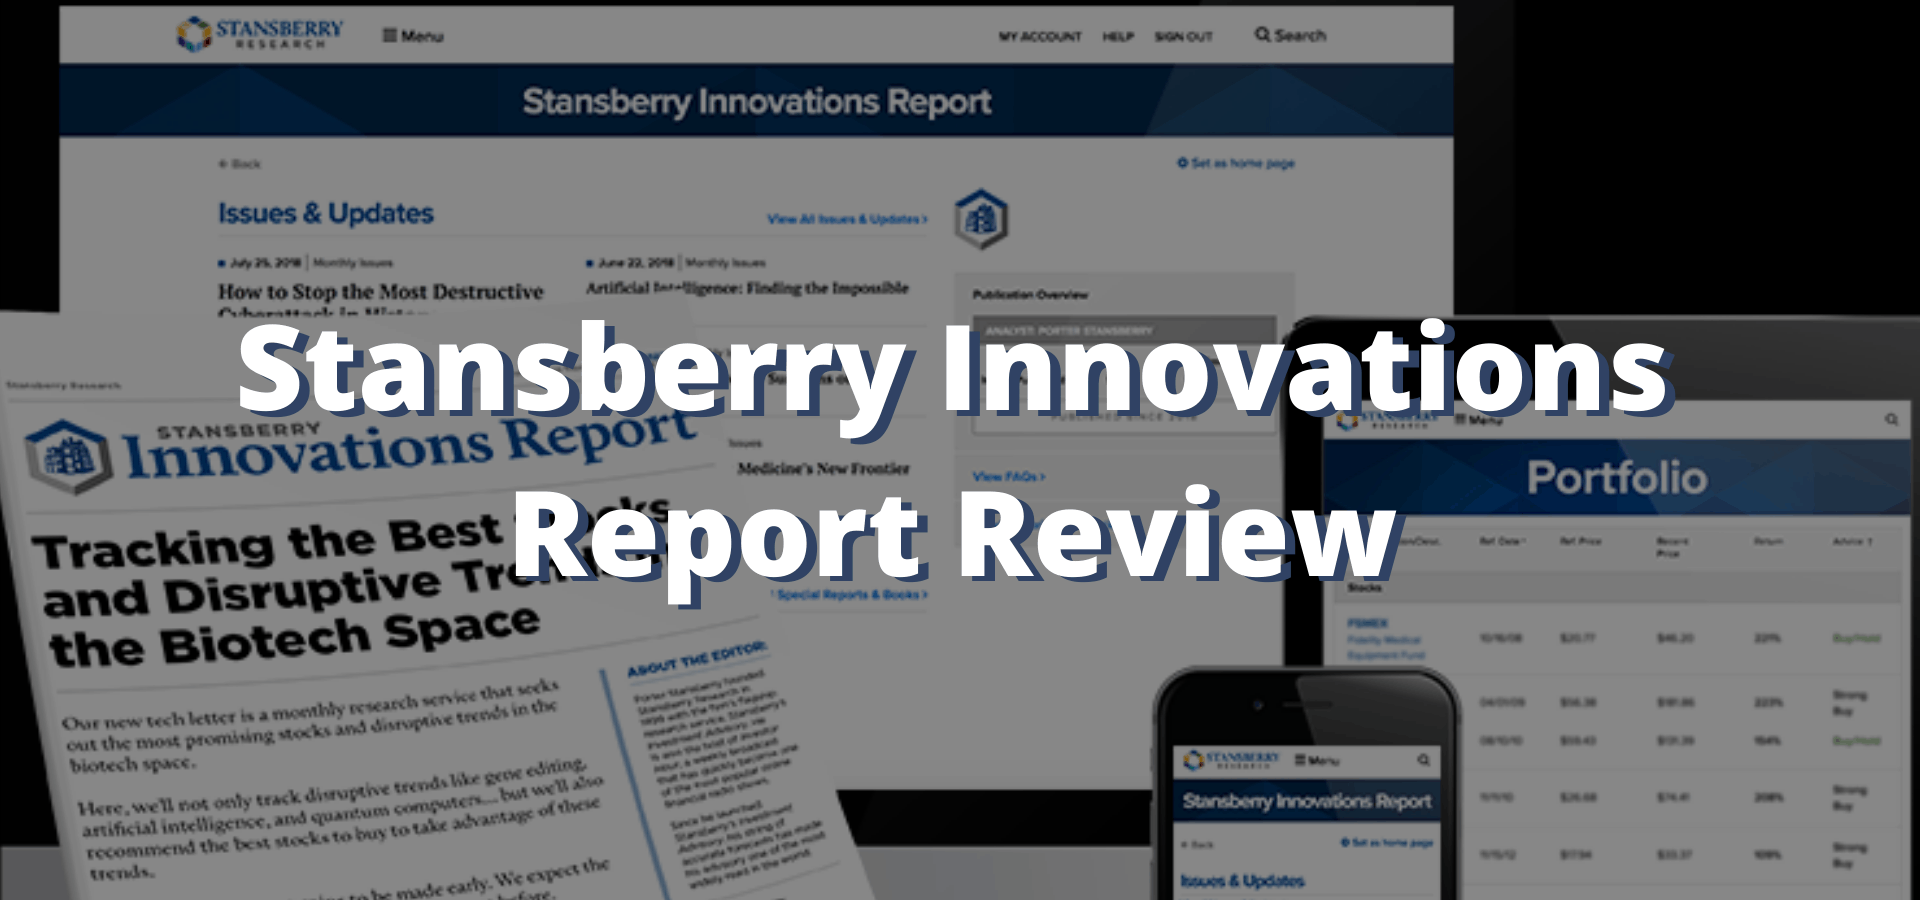 Stansberry Innovations Report Review: Is Porter Stansberry A Fraud?